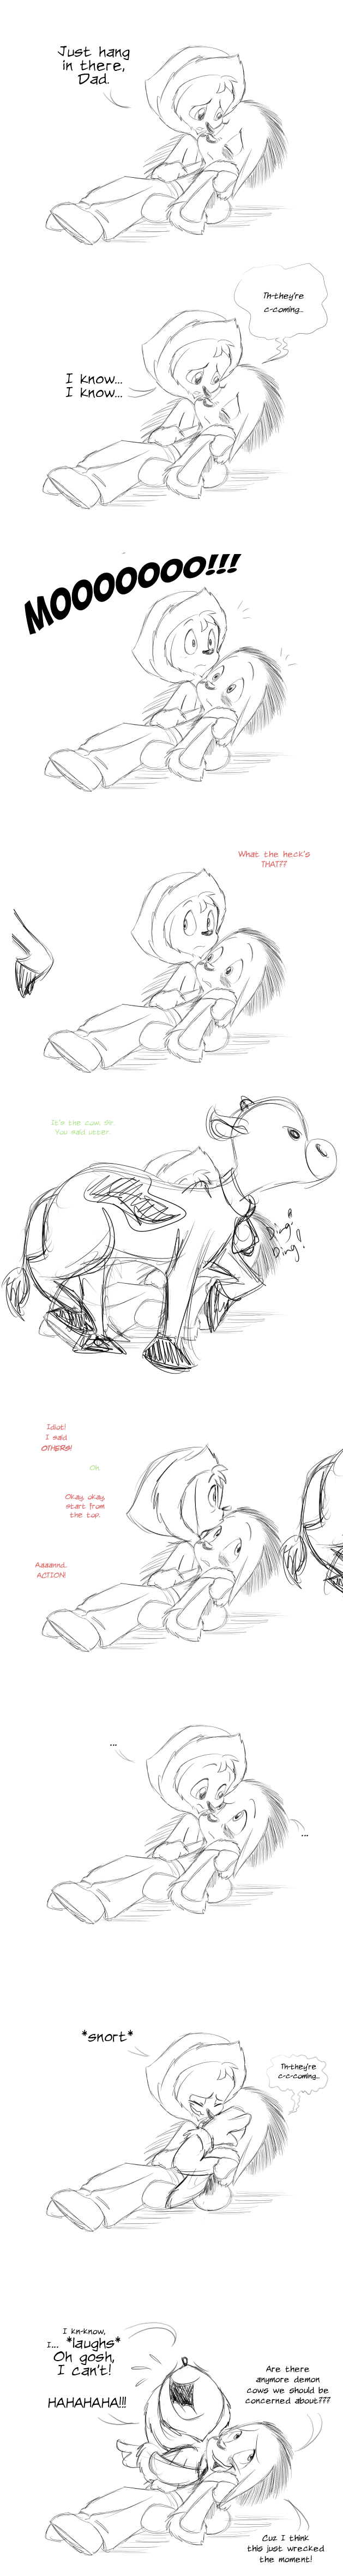 how to draw a cow kics cows by kicsterash on deviantart 6778